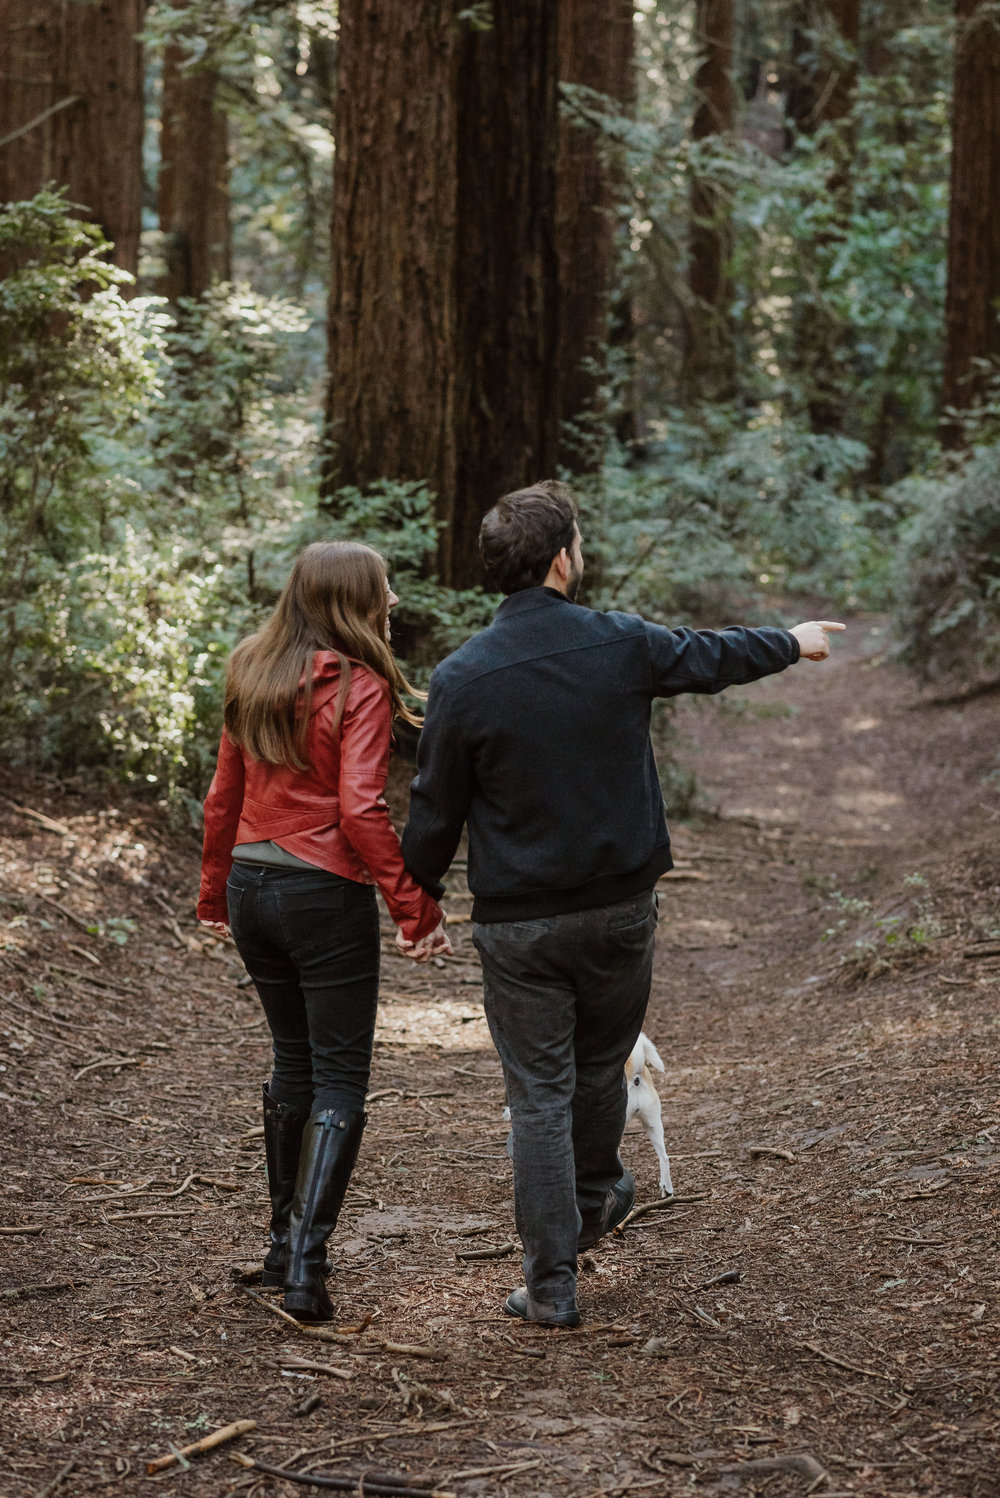 oakland-joaquin-miller-park-redwood-grove-engagement-session-vivianchen-057.jpg